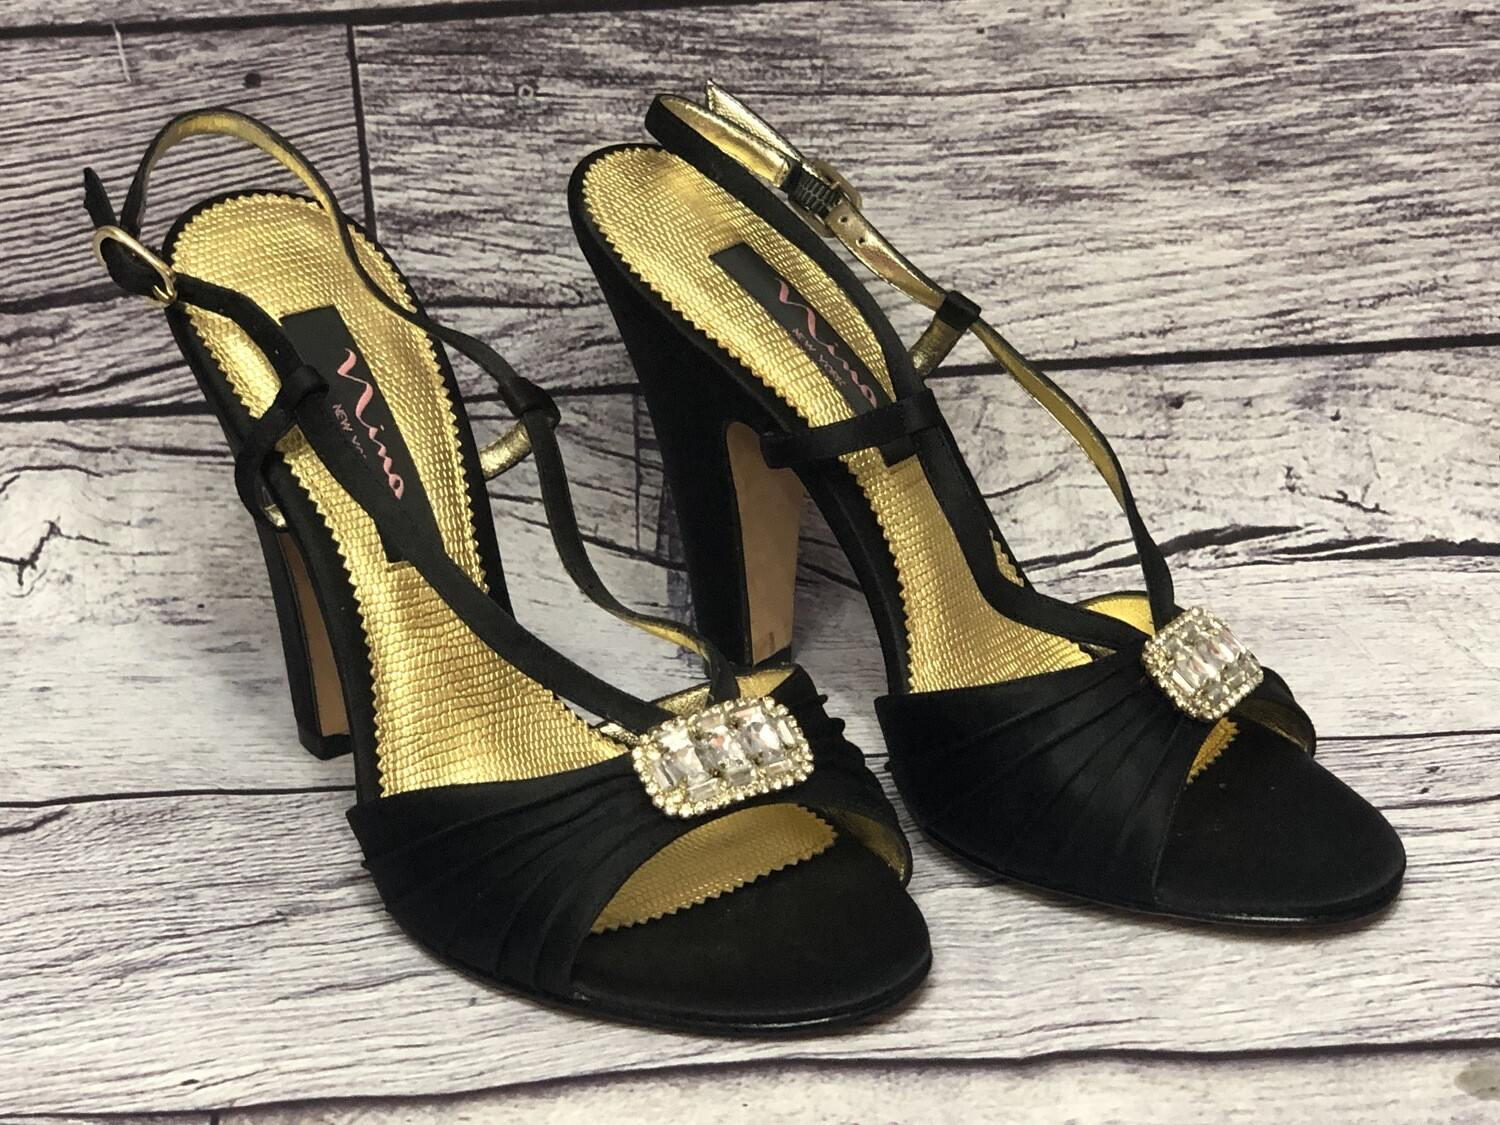 New NINA Black Satin Rhinestone Evening Strappy Heels size 8